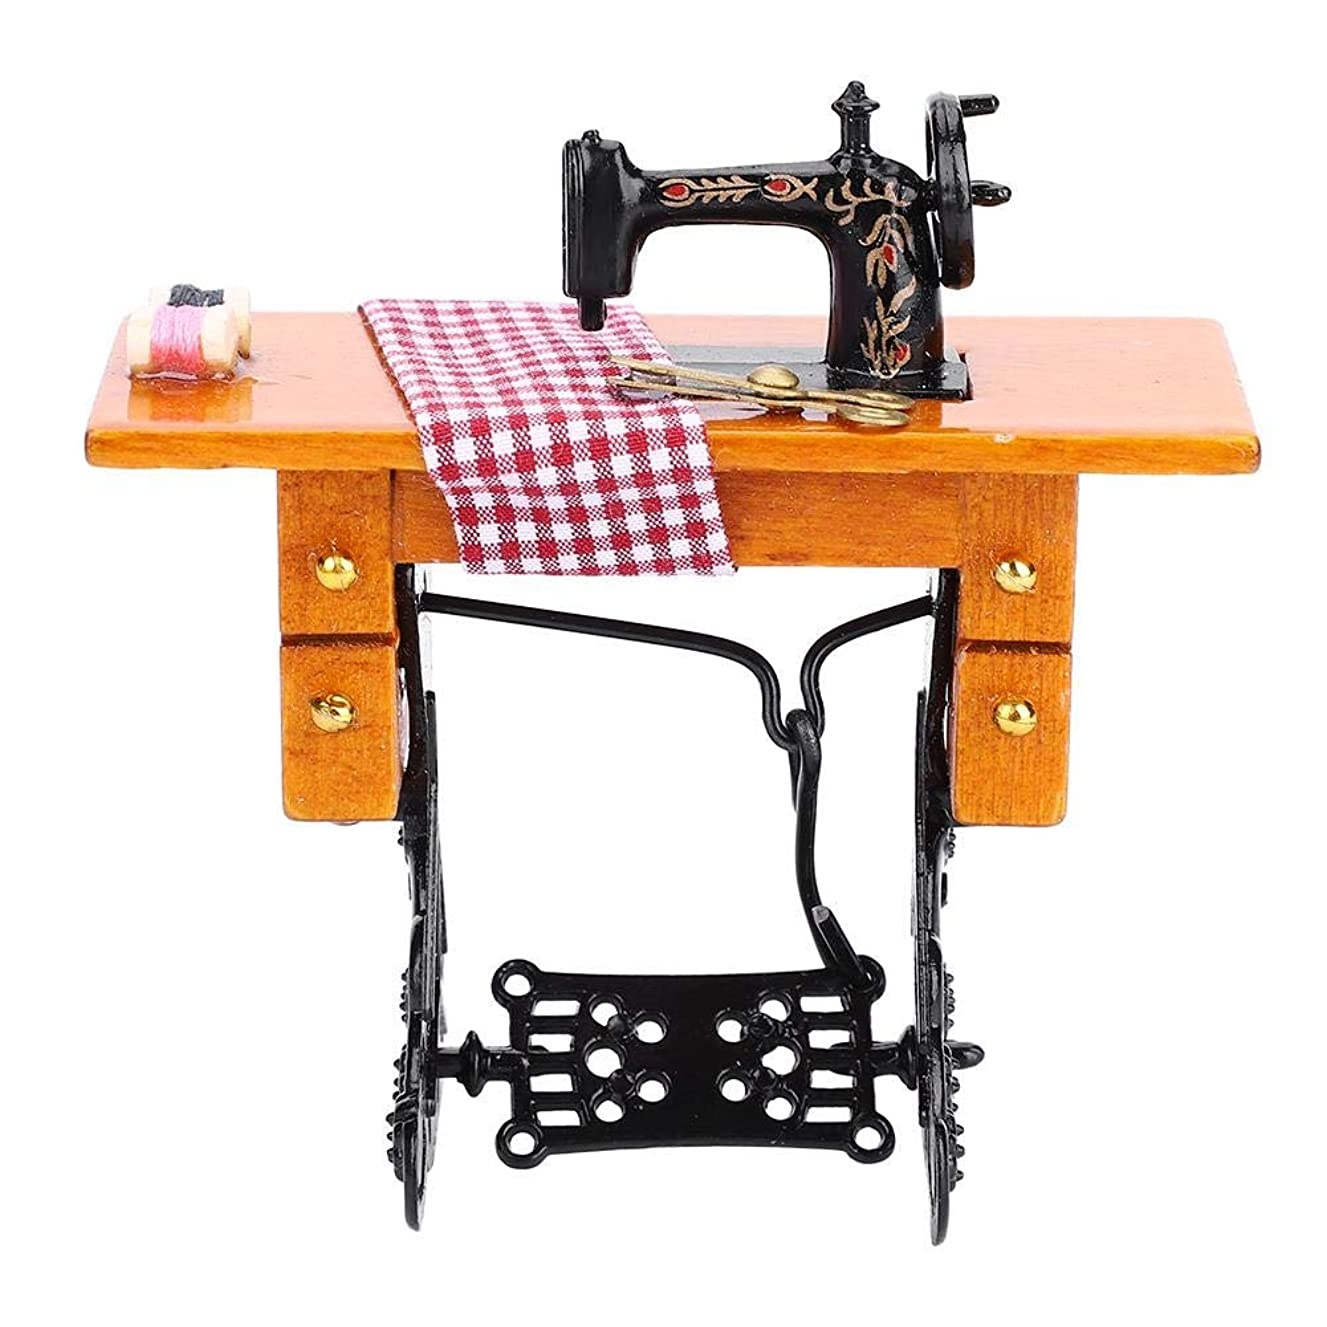 Zerodis Dollhouse Sewing Machine Toy, Kids Mini Furniture Indoor Pretend Toys Educational Toy Role Play Game Doll House Decor Gift for Child Toddlers